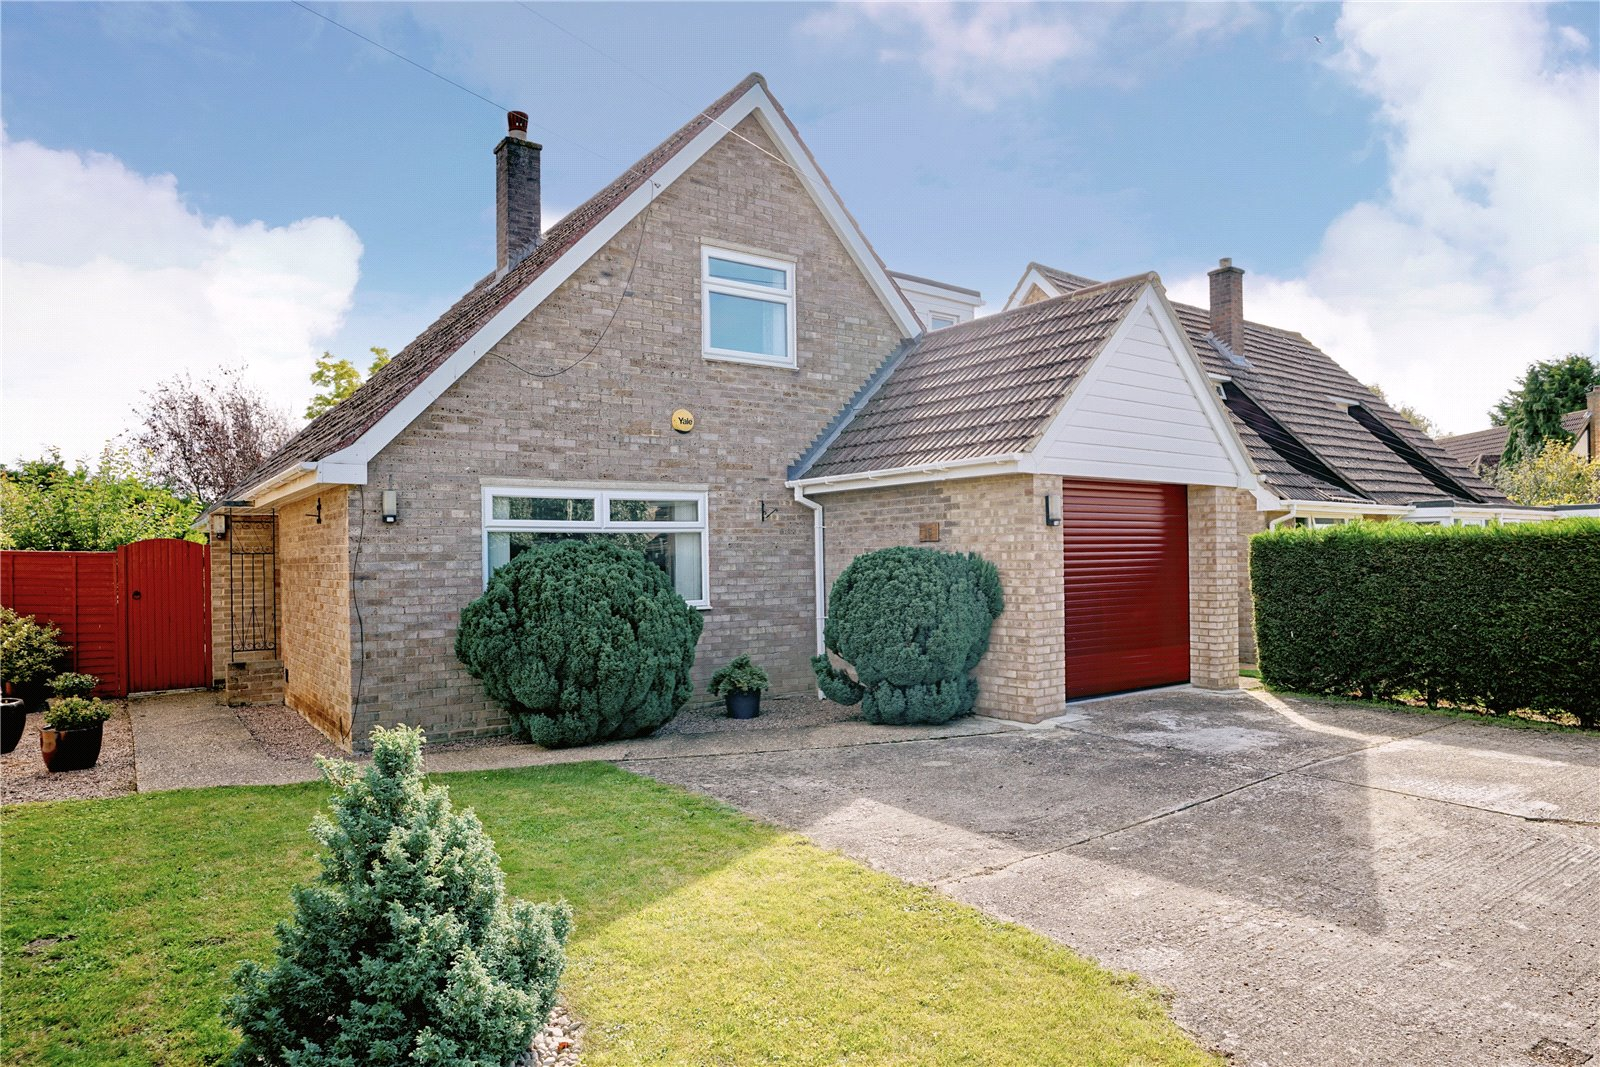 3 bed house for sale in Somersham, PE28 3HP, PE28